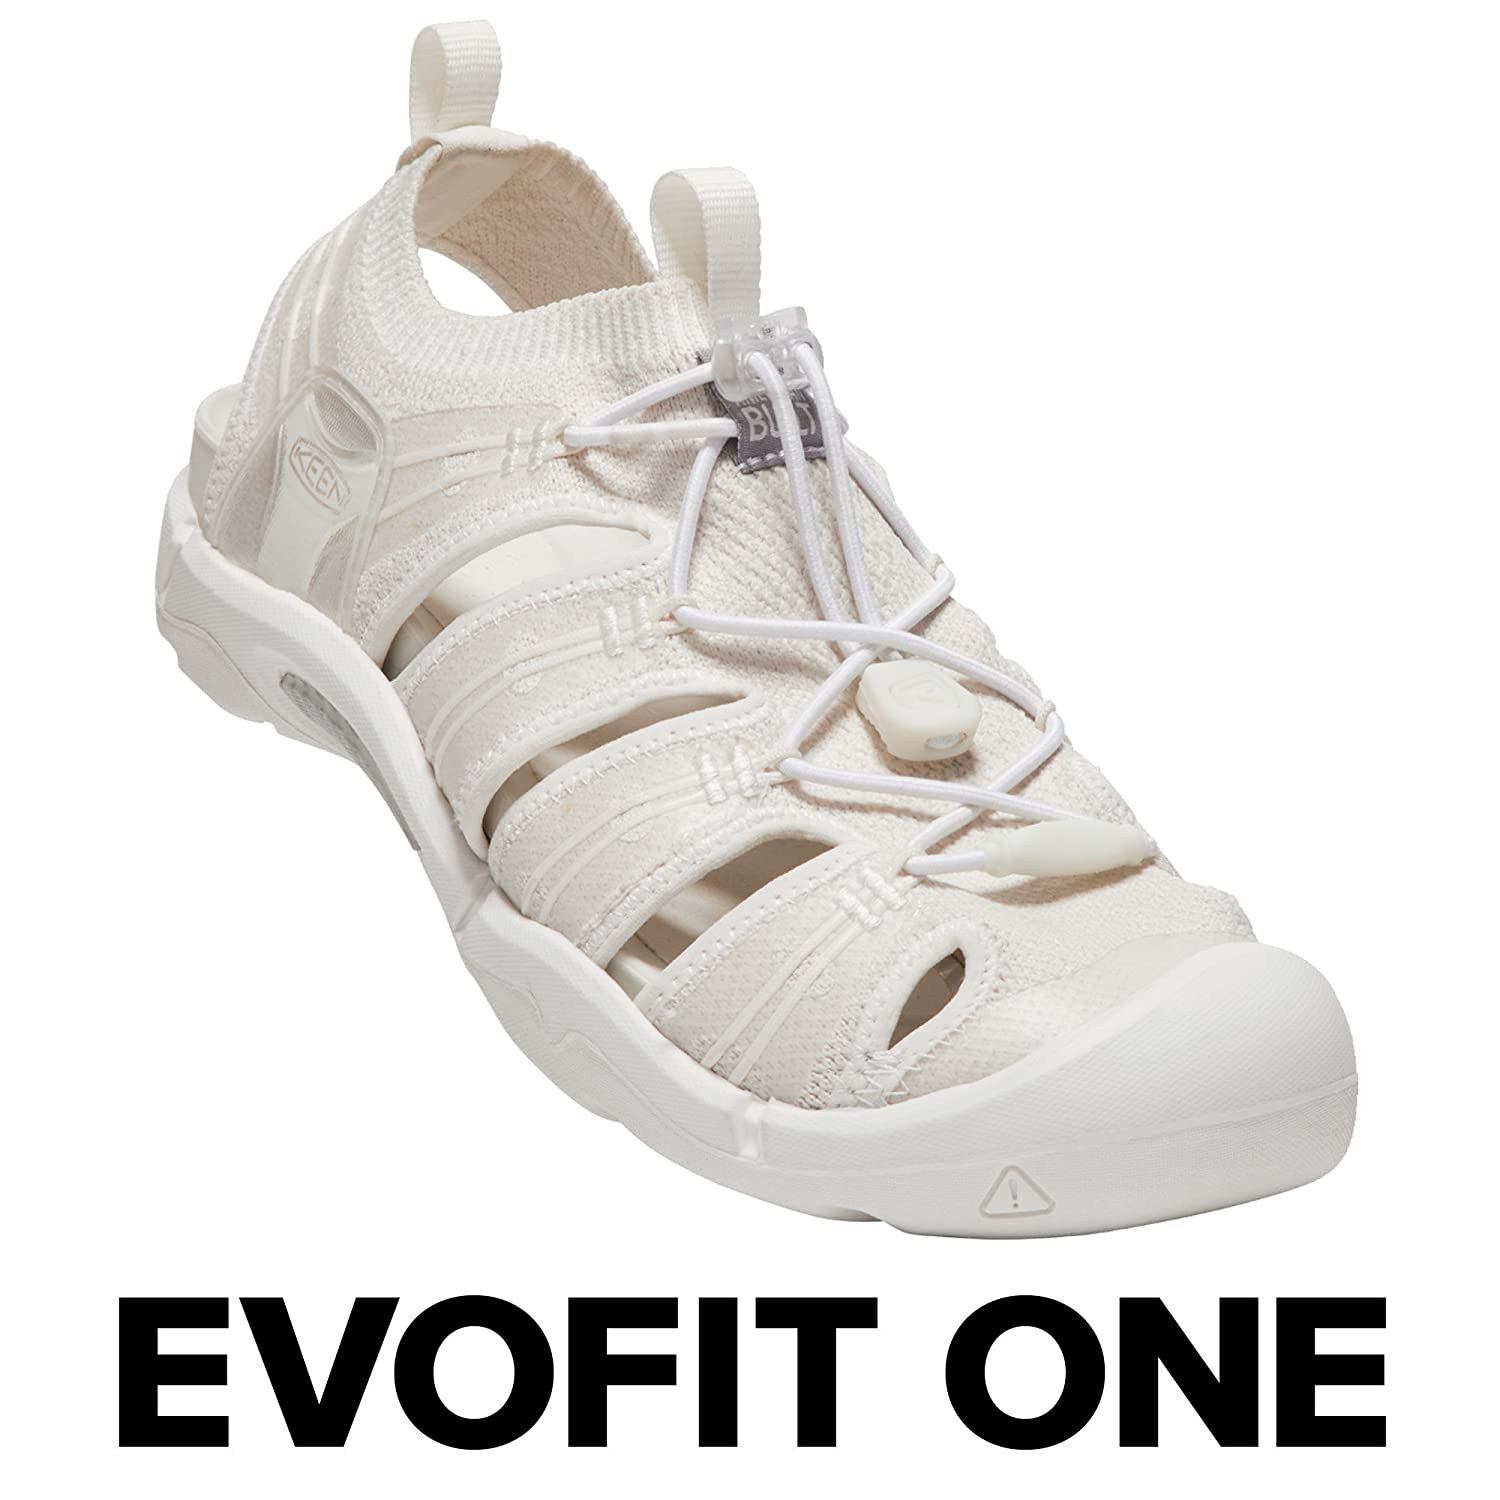 KEEN Women's EVOFIT ONE Water Sandal for Outdoor Adventures B0721DBKWV 7 M US|Triple White